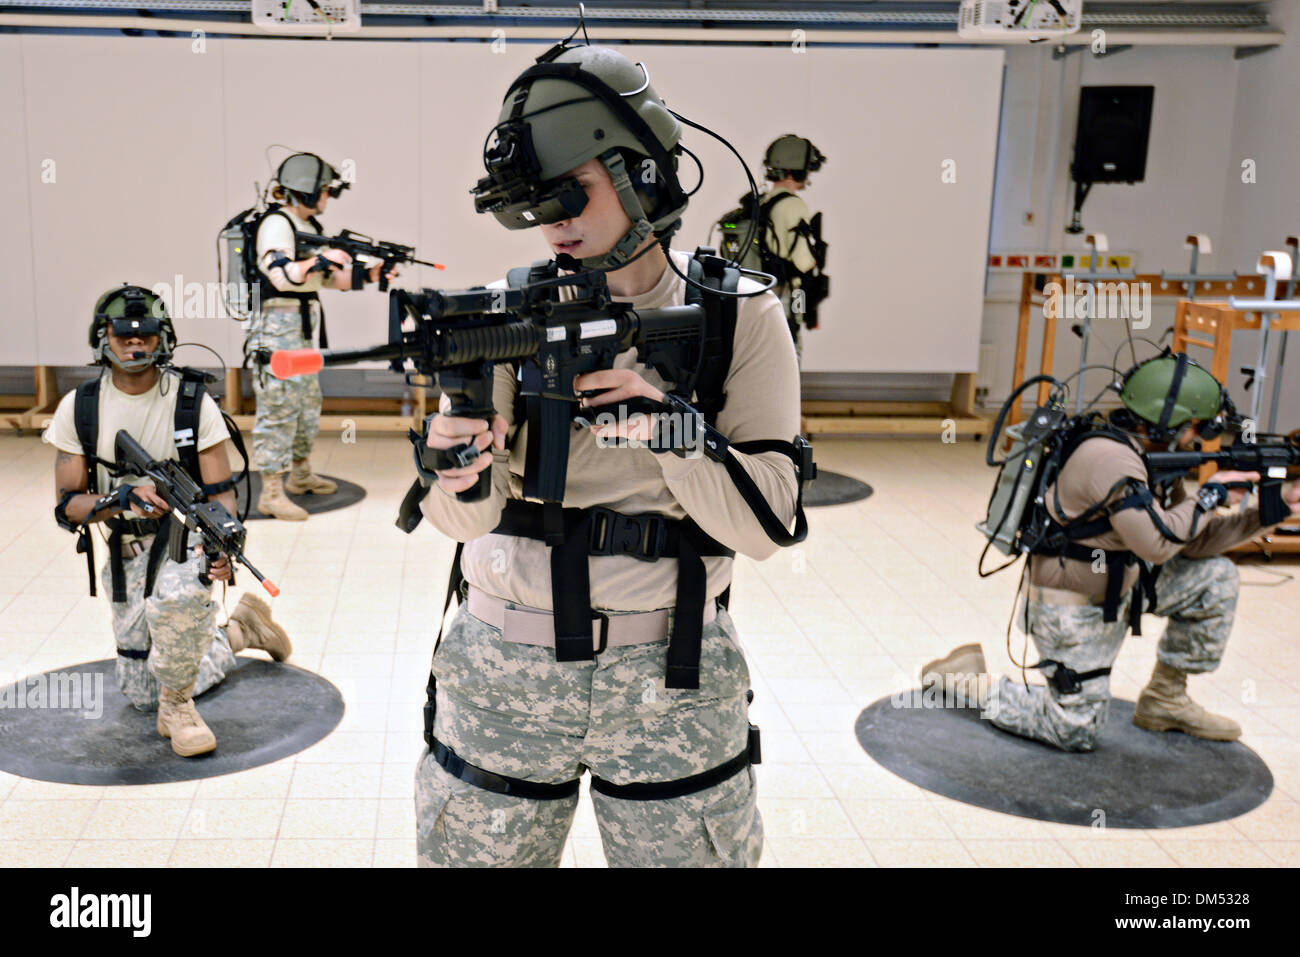 US Army soldiers conduct immersive virtual simulation training using the Dismounted Soldier Training System  December 11, 2013 in Grafenwoehr, Germany. - Stock Image